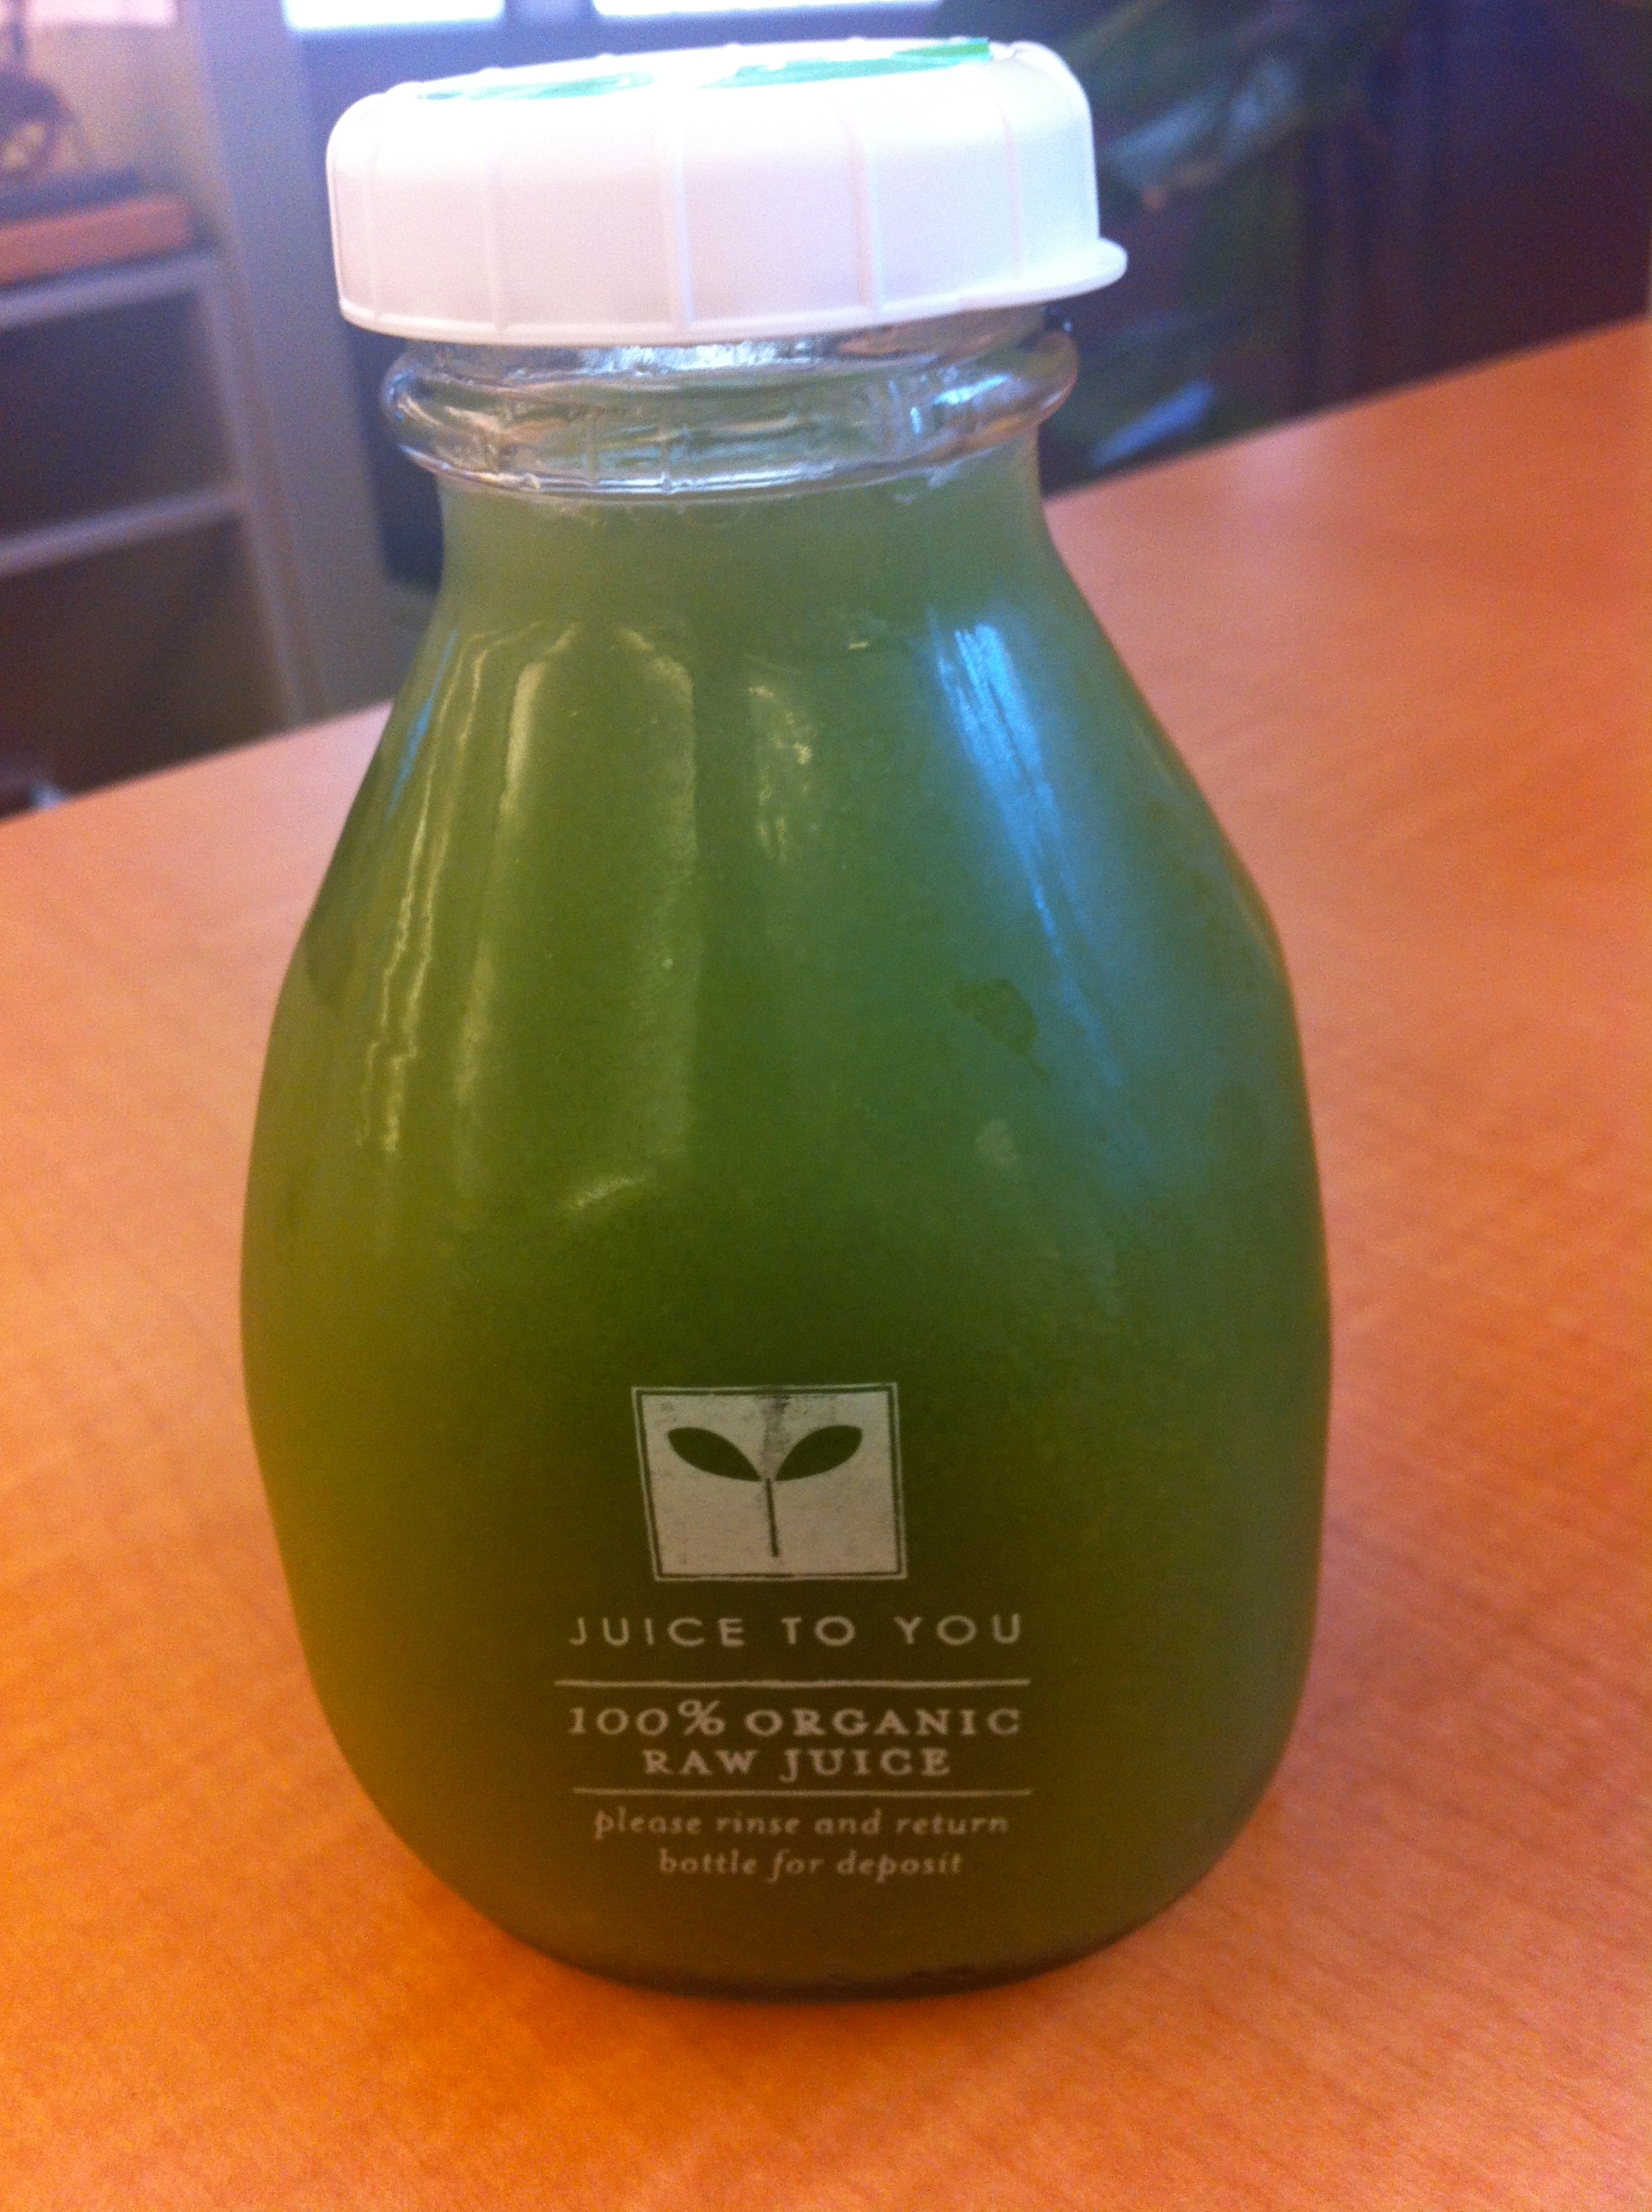 Juice to you runningonhungrydotcom 415pm juice 4 coconut water sweet sweet salvation ive been waiting for you all day i really dont think i will ever be able to drink normal malvernweather Gallery